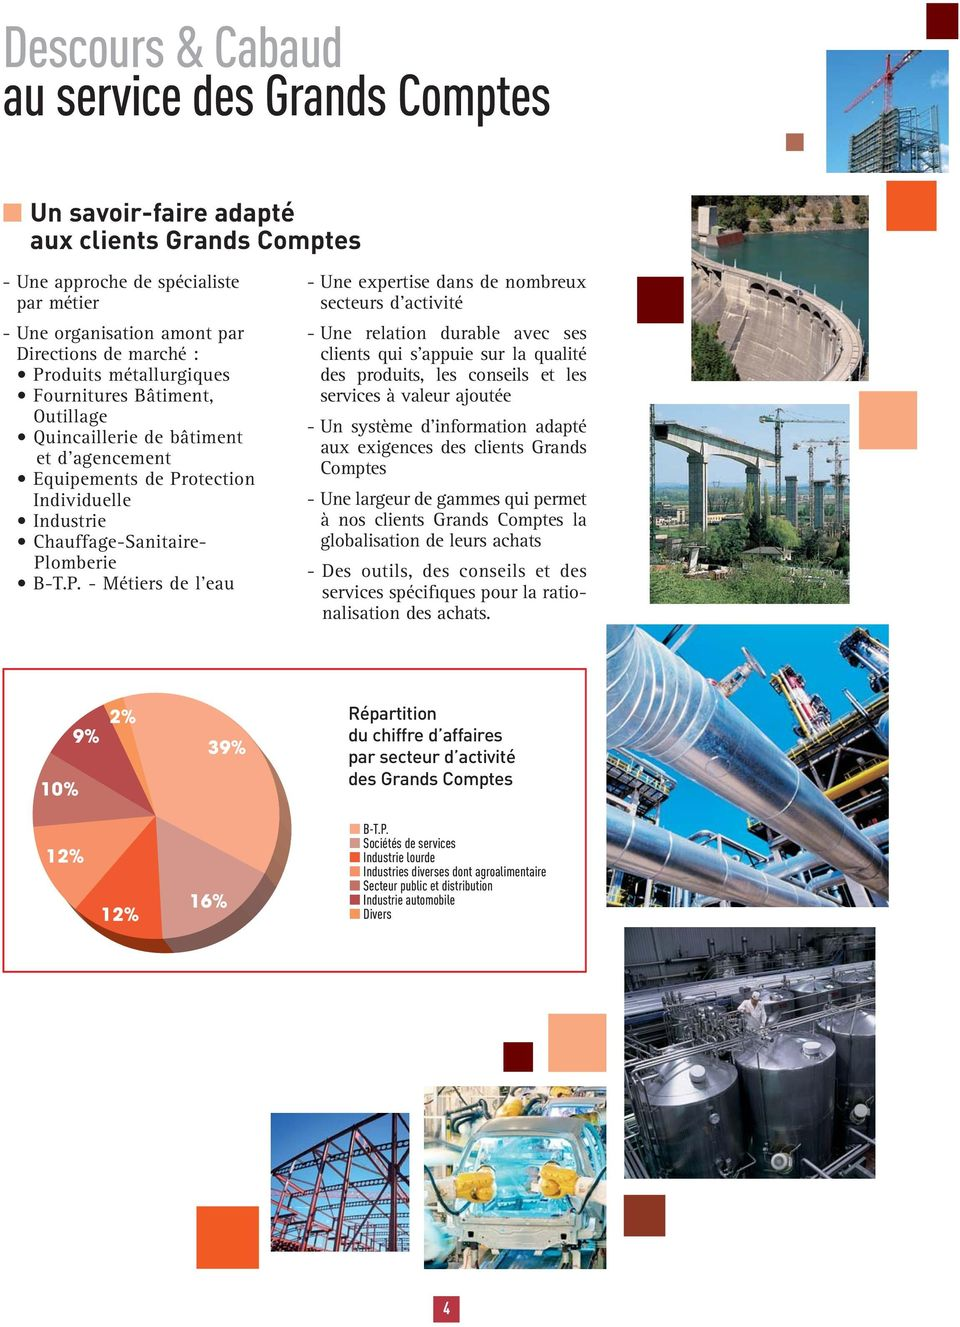 otection Individuelle Industrie Chauffage-Sanitaire- Pl